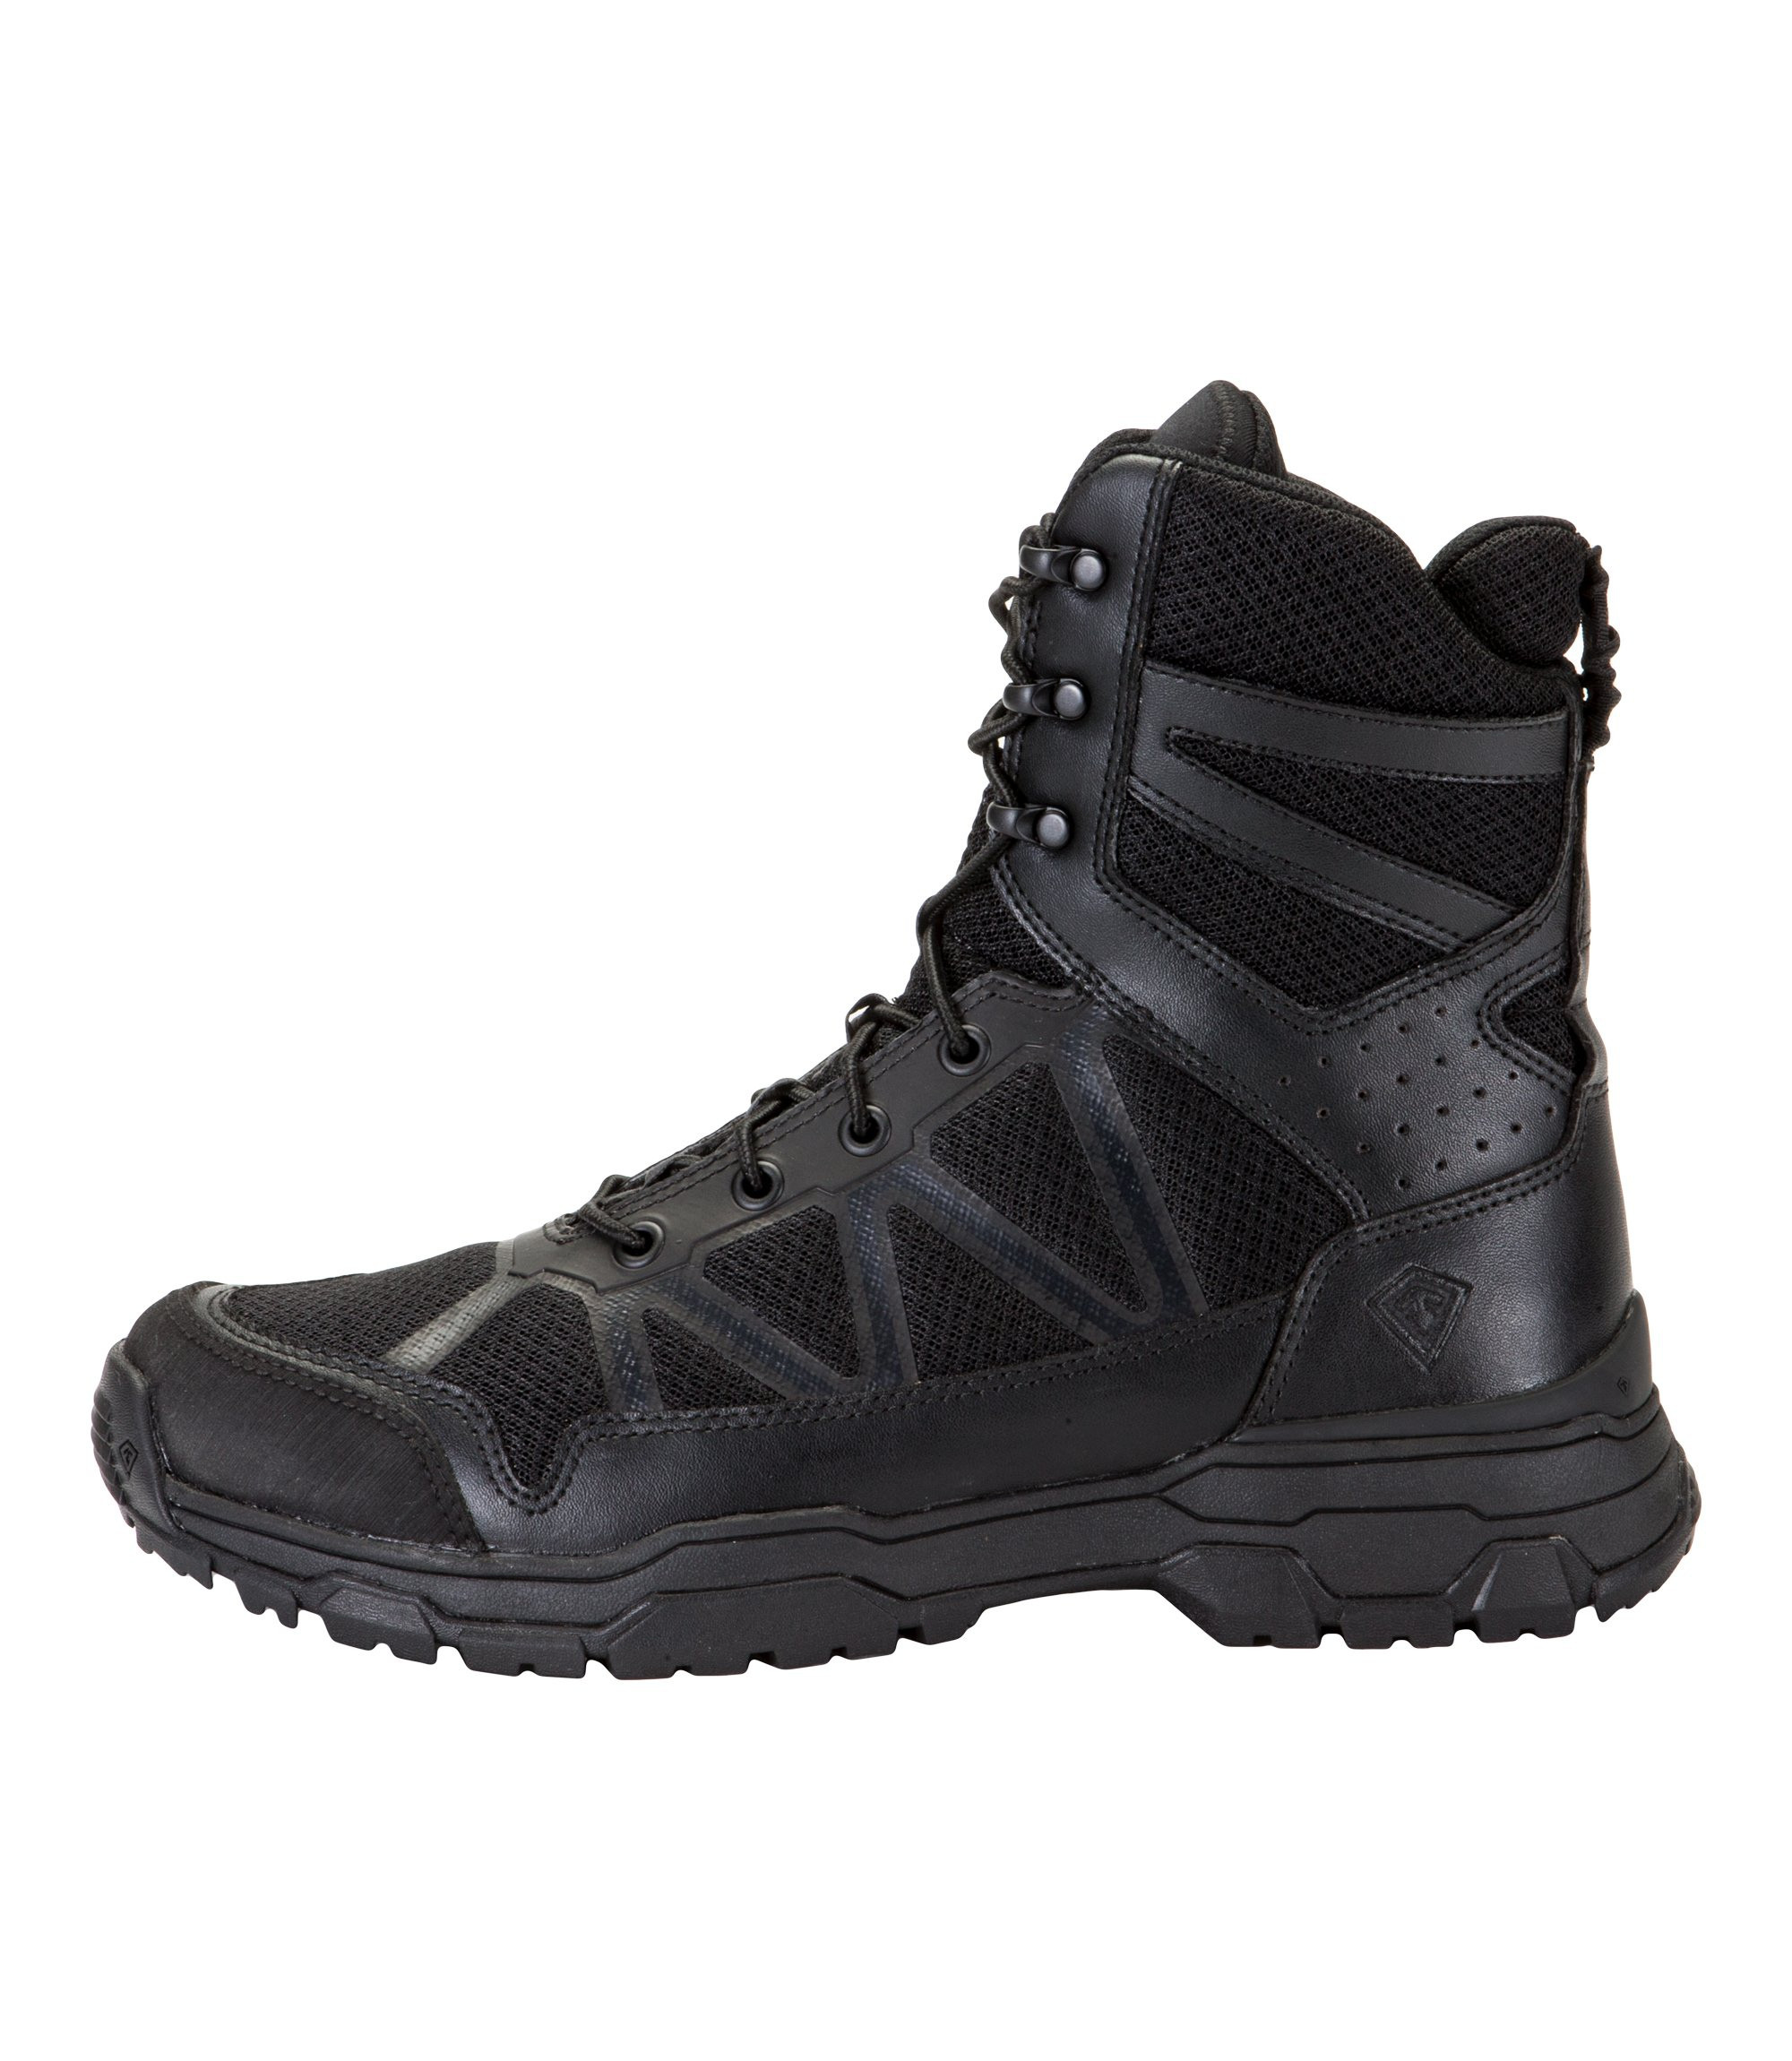 "BUTY FIRST TACTICAL M'S 7"" OPERATOR BOOT BLACK 165010"